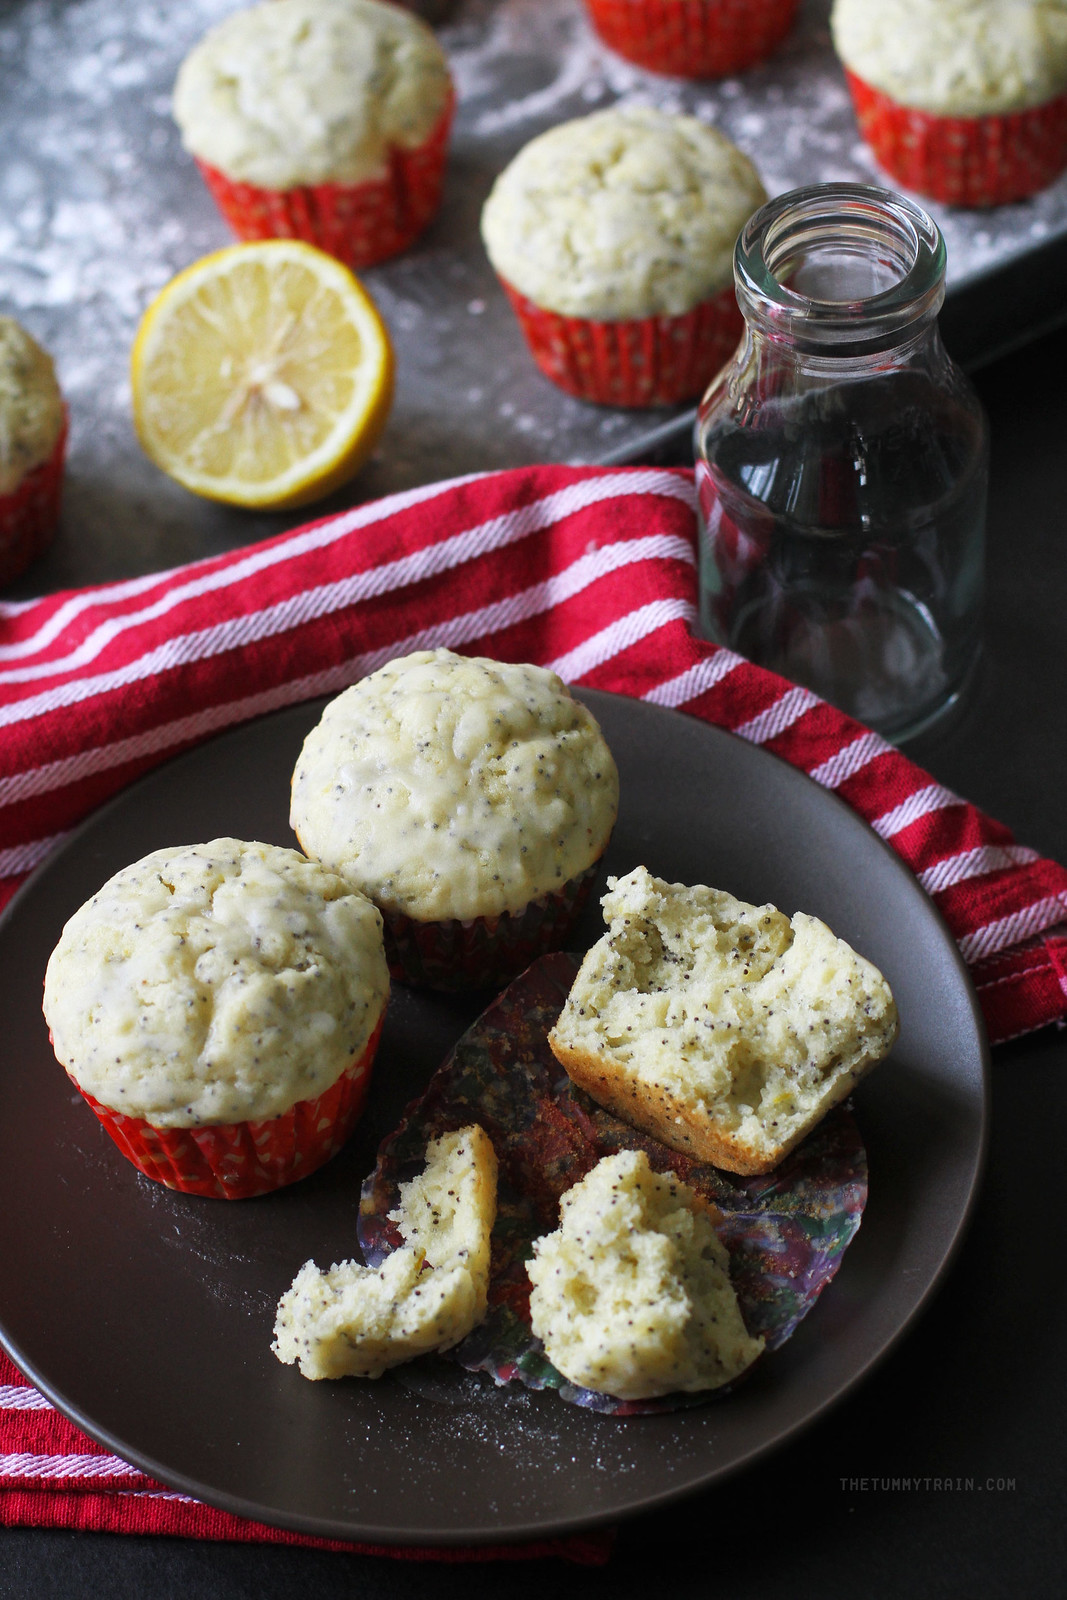 24498236744 3af2303734 h - Getting personal with these Lemon Poppyseed Muffins